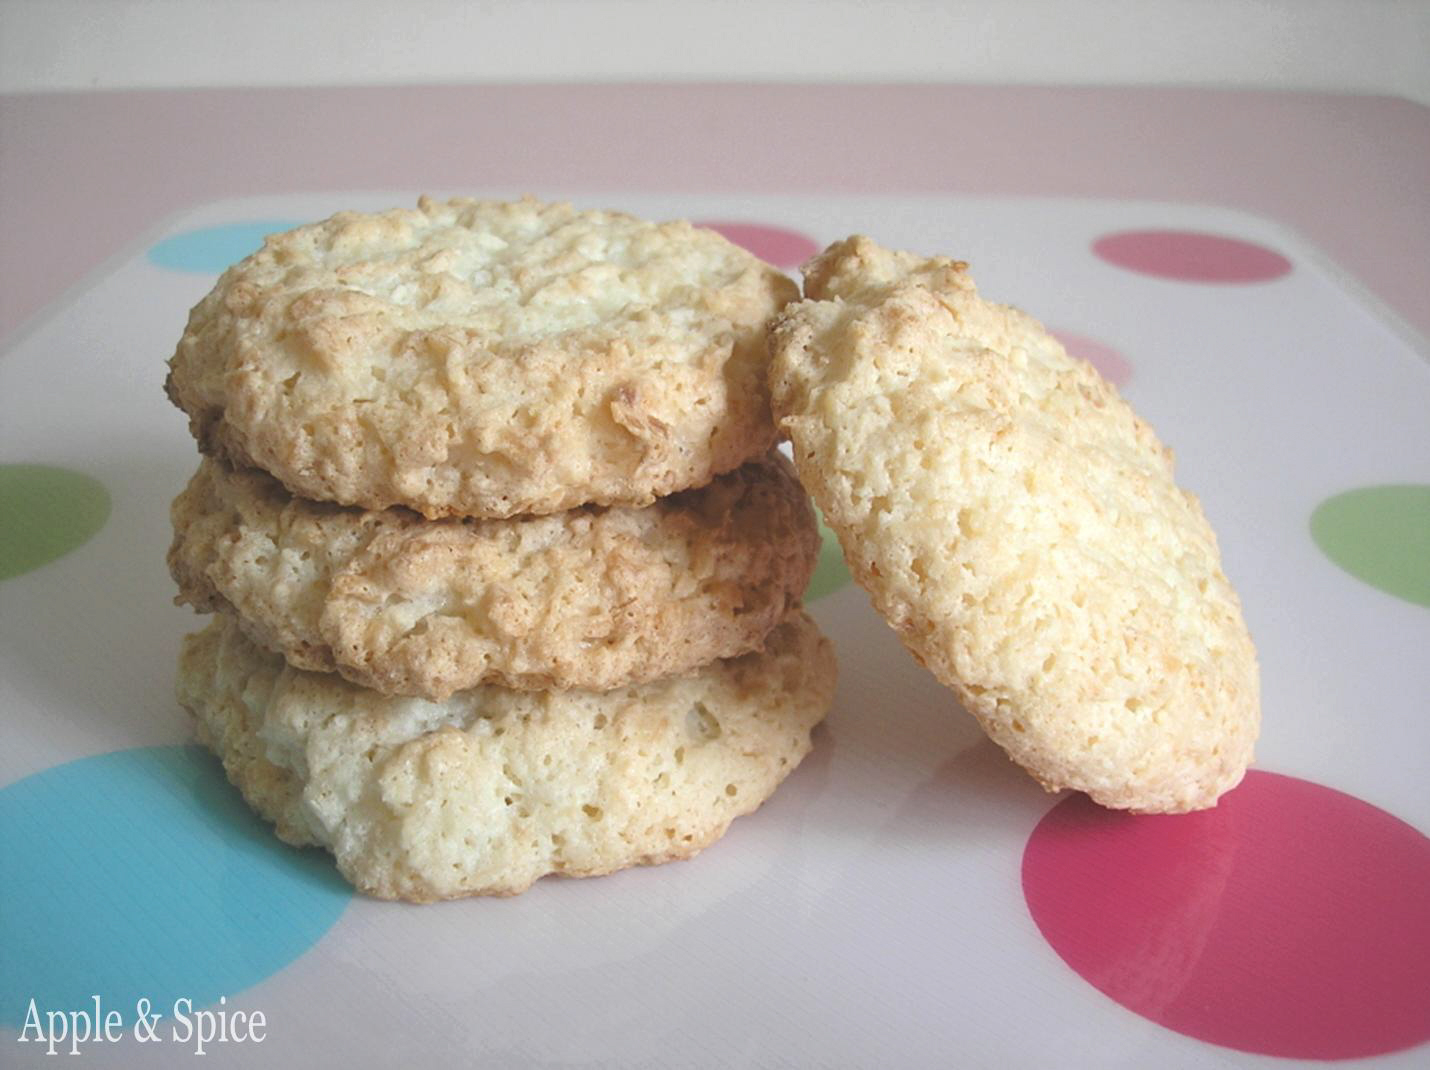 Apple & Spice: Coconut & Almond Macaroons Almond Macaroons Recipe Uk